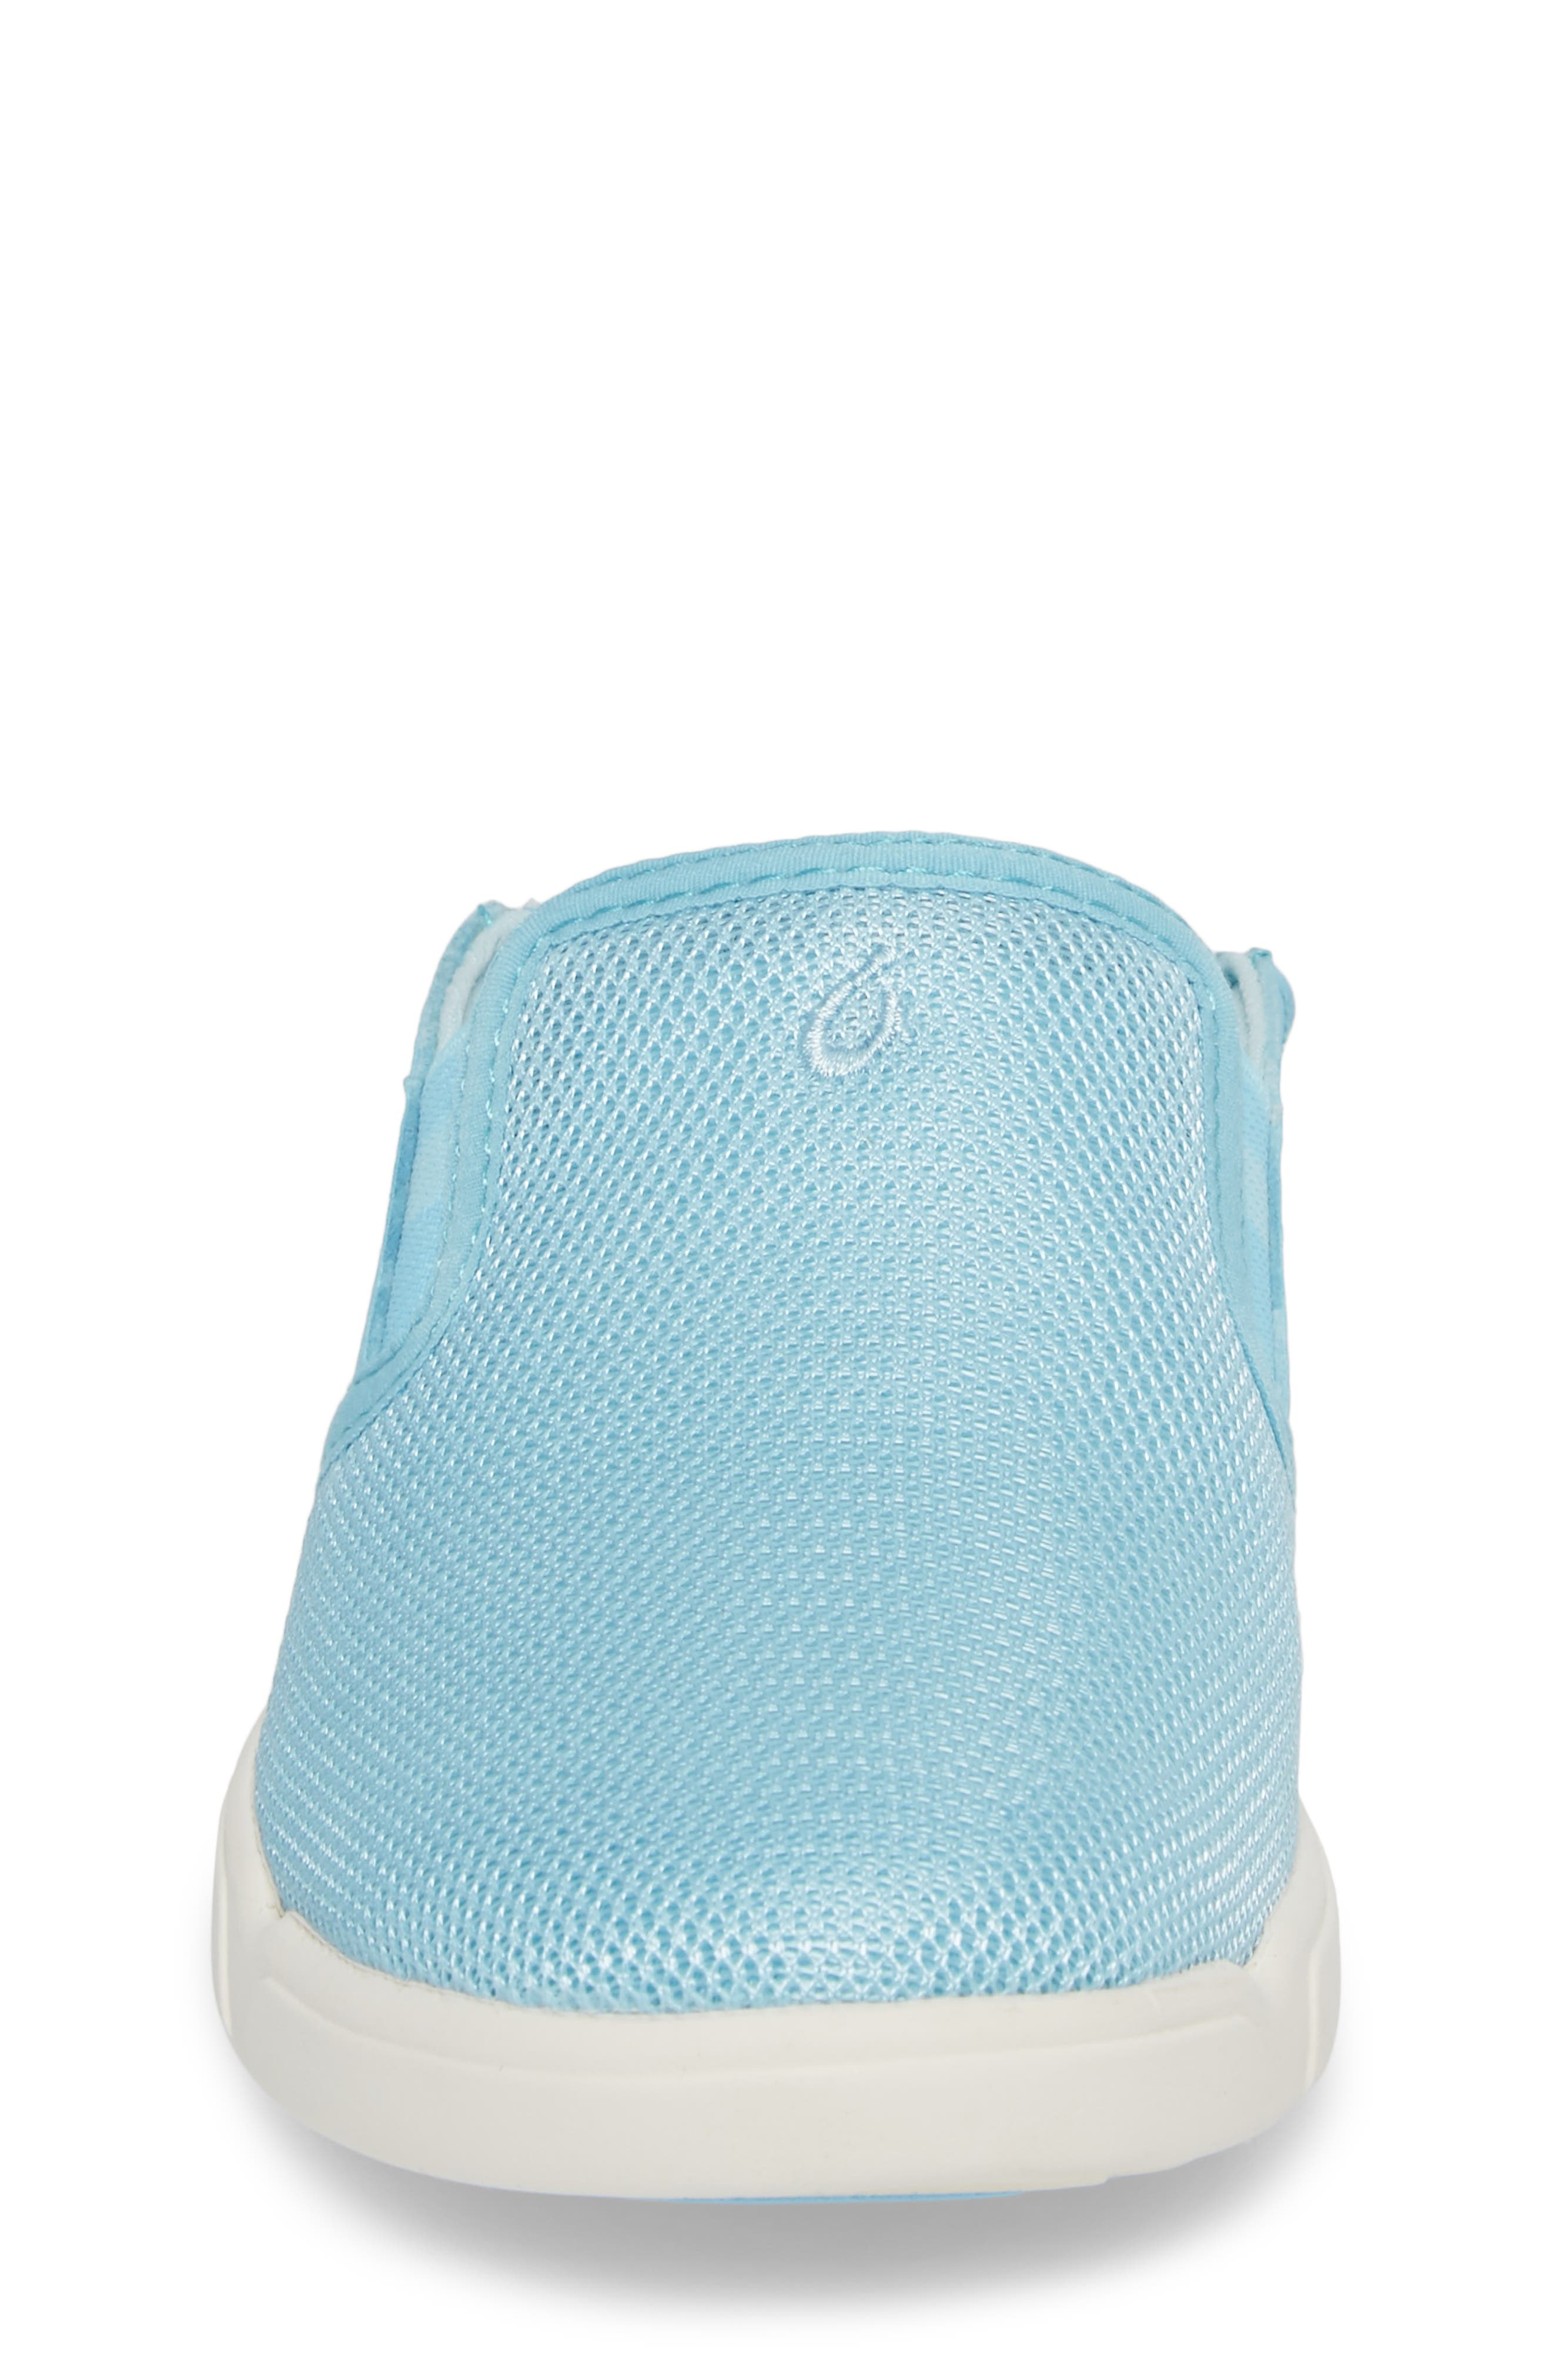 Pehuea Maka Collapsible Slip-On,                             Alternate thumbnail 5, color,                             Cotton Candy/ Clearwater